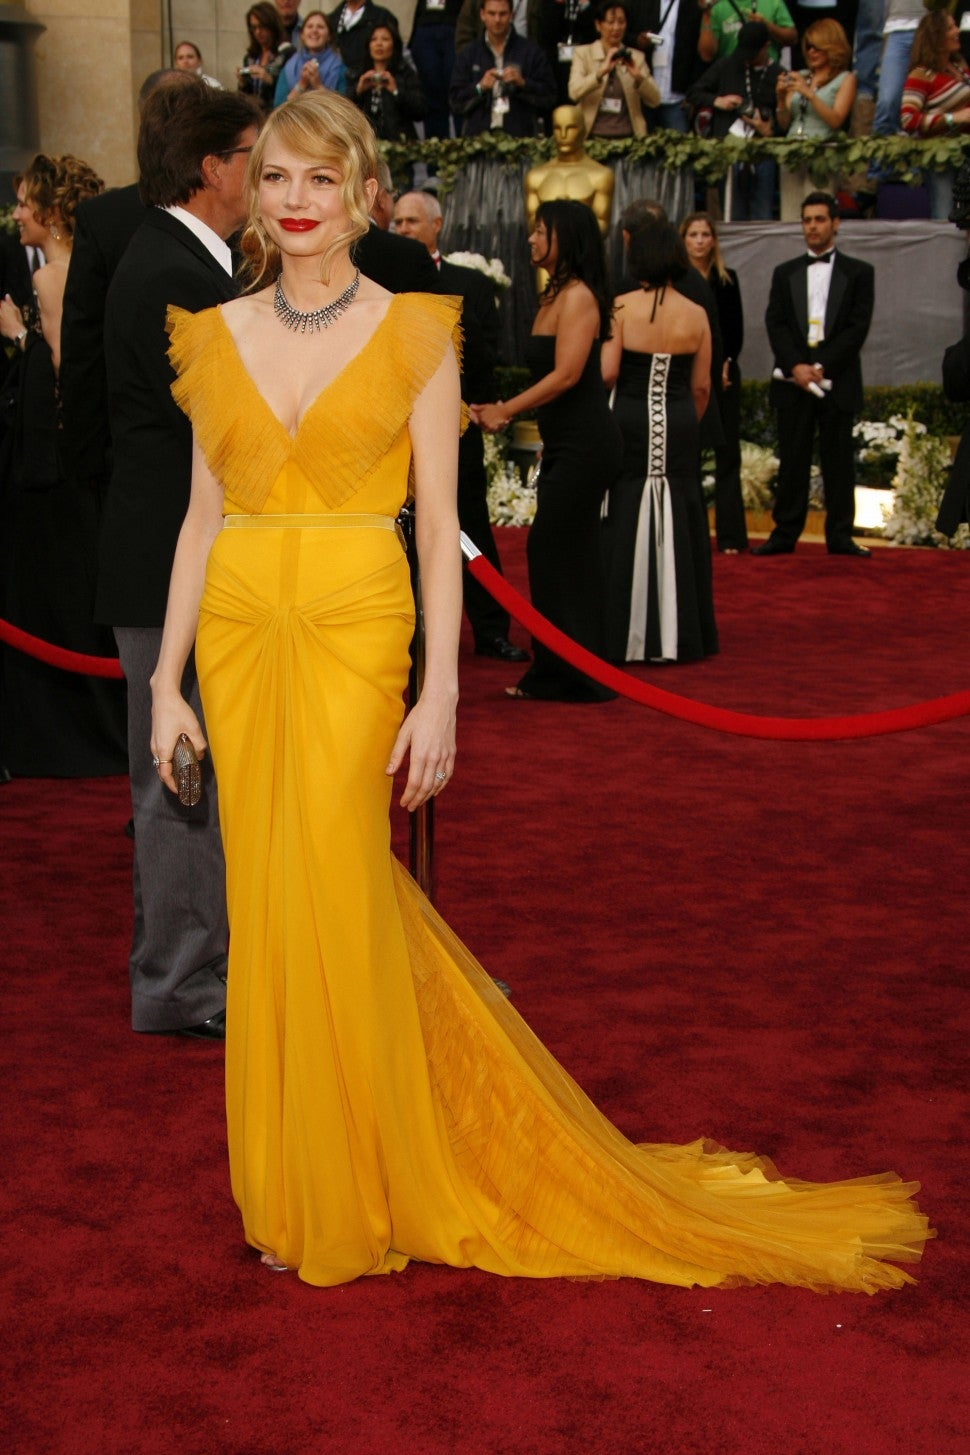 Michelle Williams Oscars 2006 dress